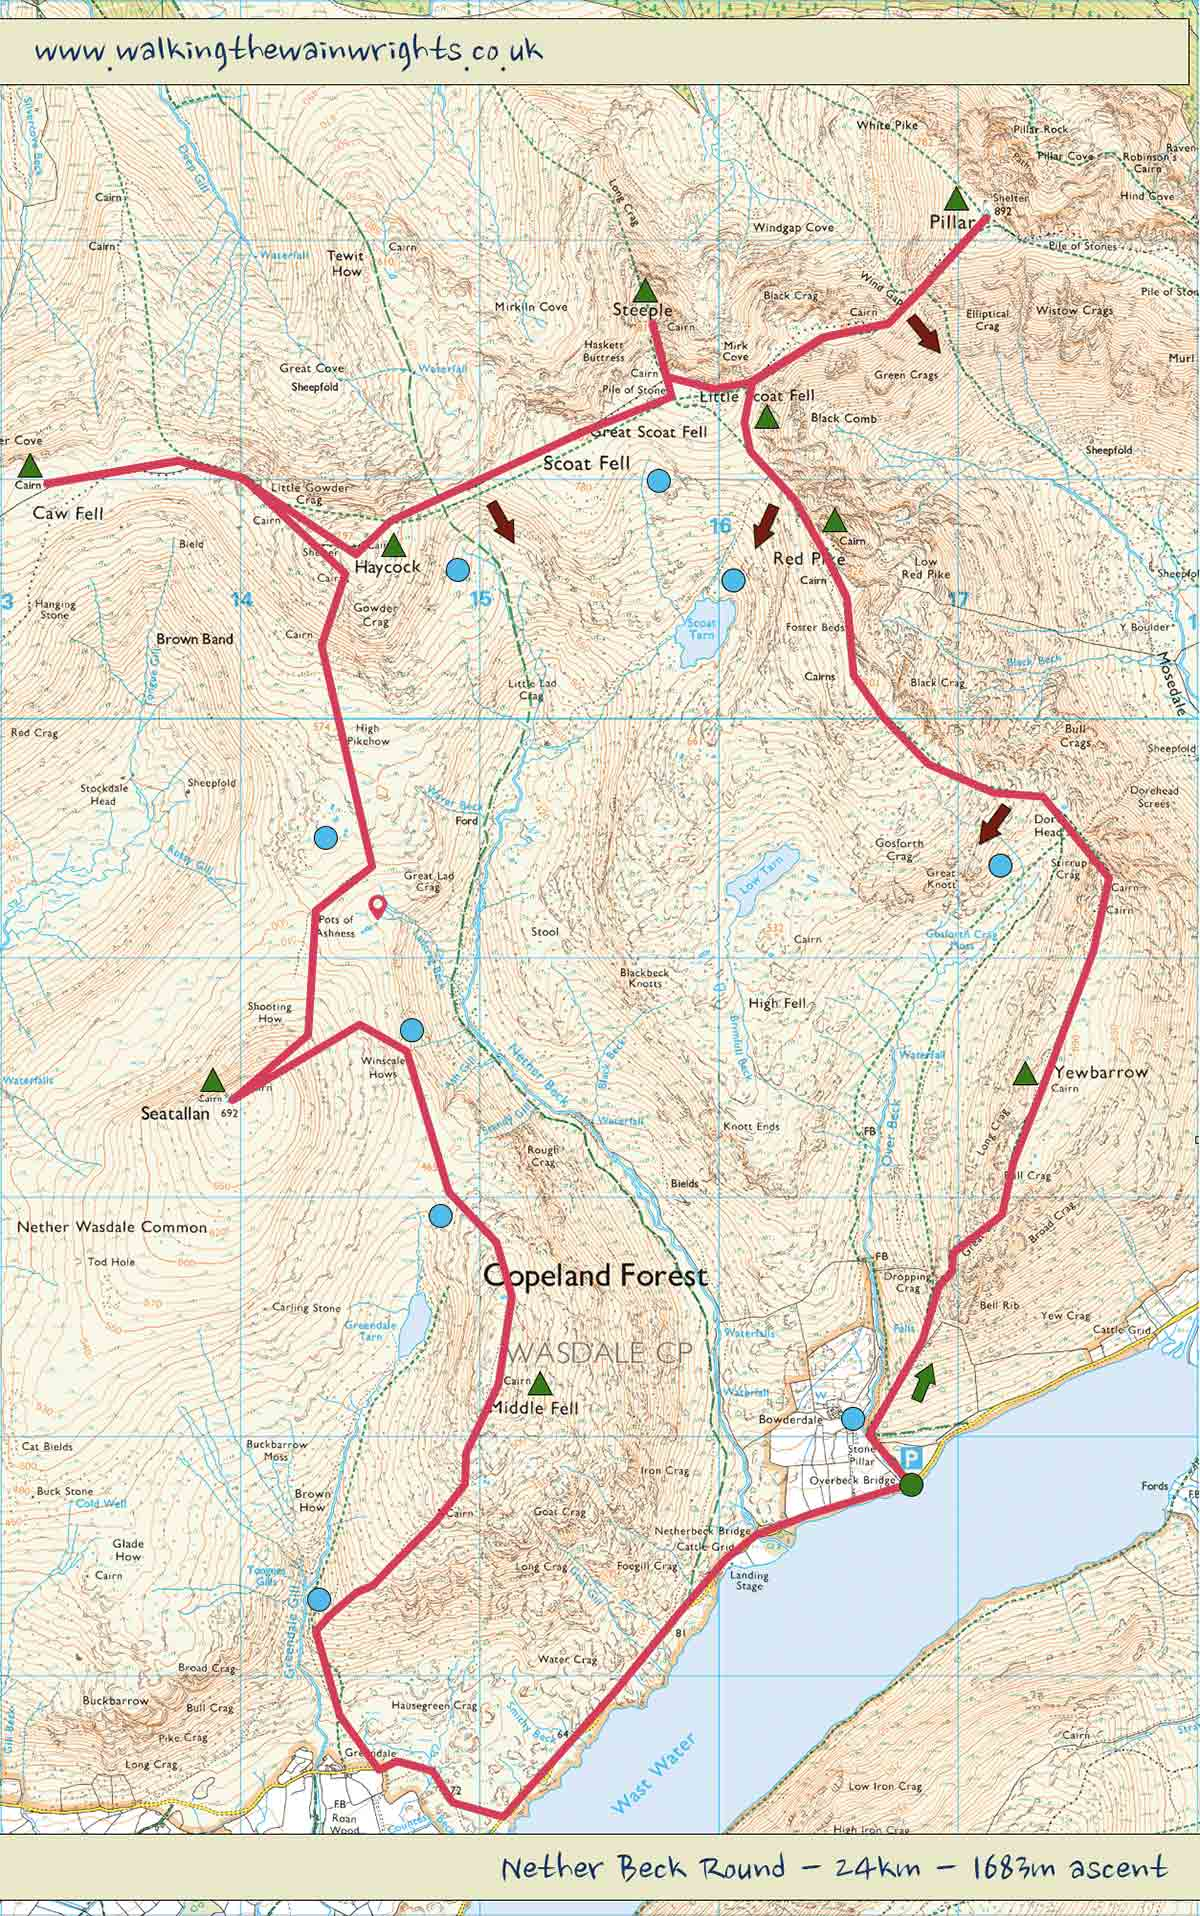 Netherbeck Round route